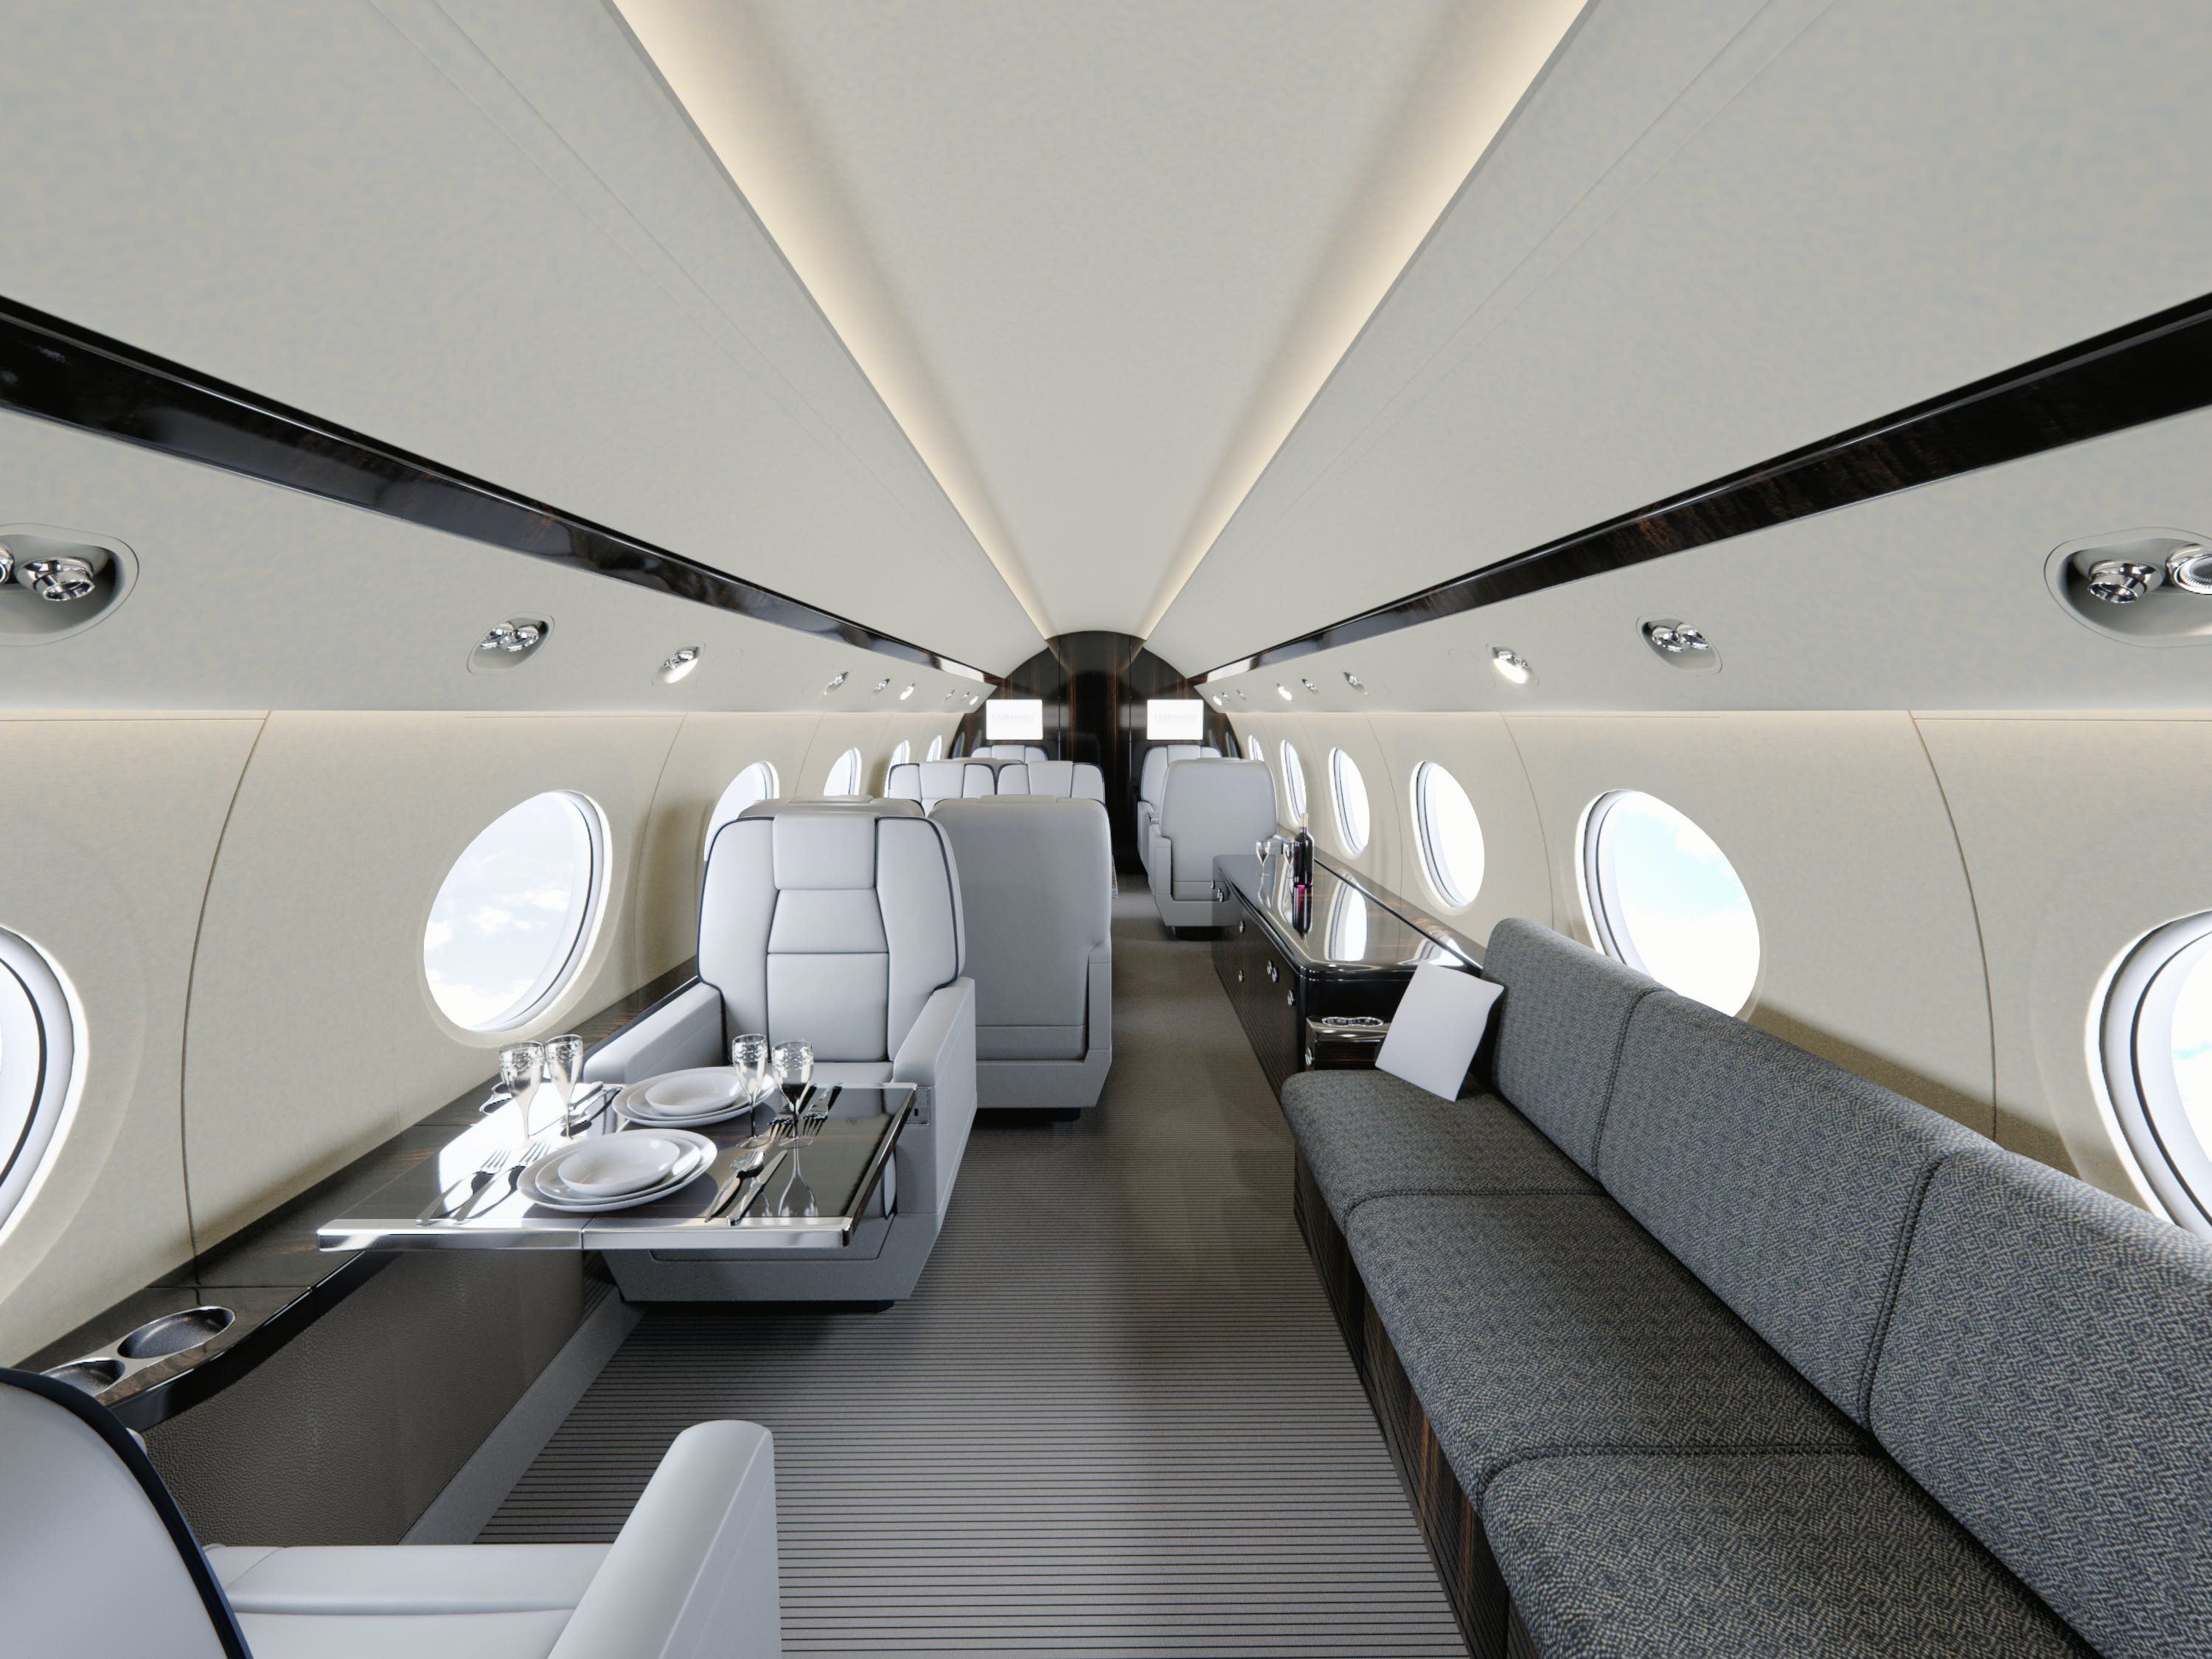 gulfstream v interior todd rushing archinect. Black Bedroom Furniture Sets. Home Design Ideas